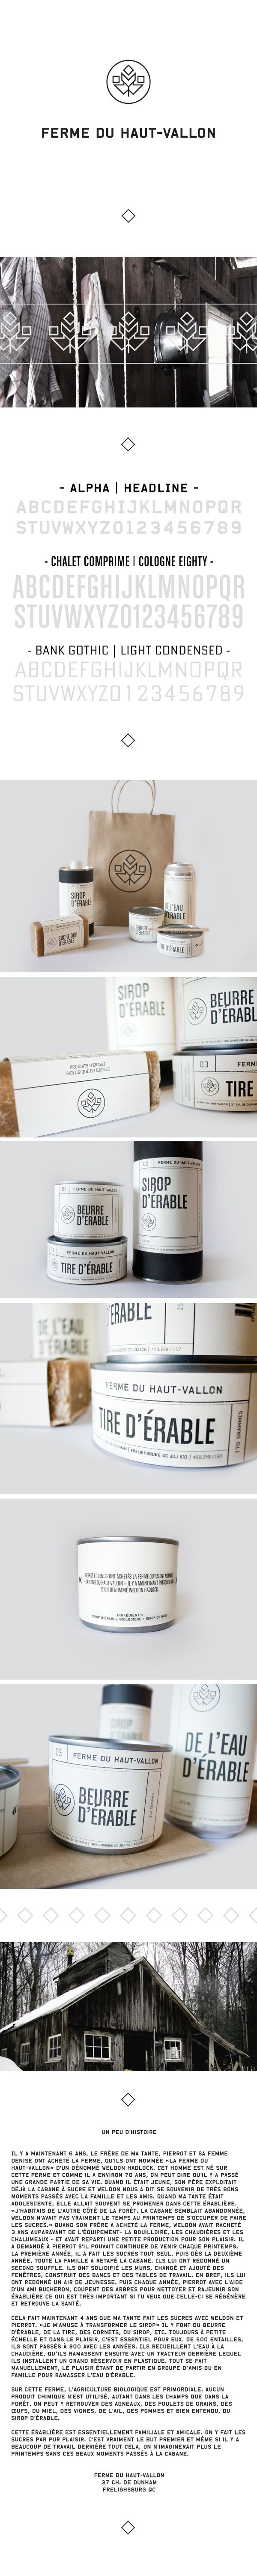 Ferme du Haut-Vallon by Eliane Cadieux, via Behance Time for a bath #identity #packaging #branding PD